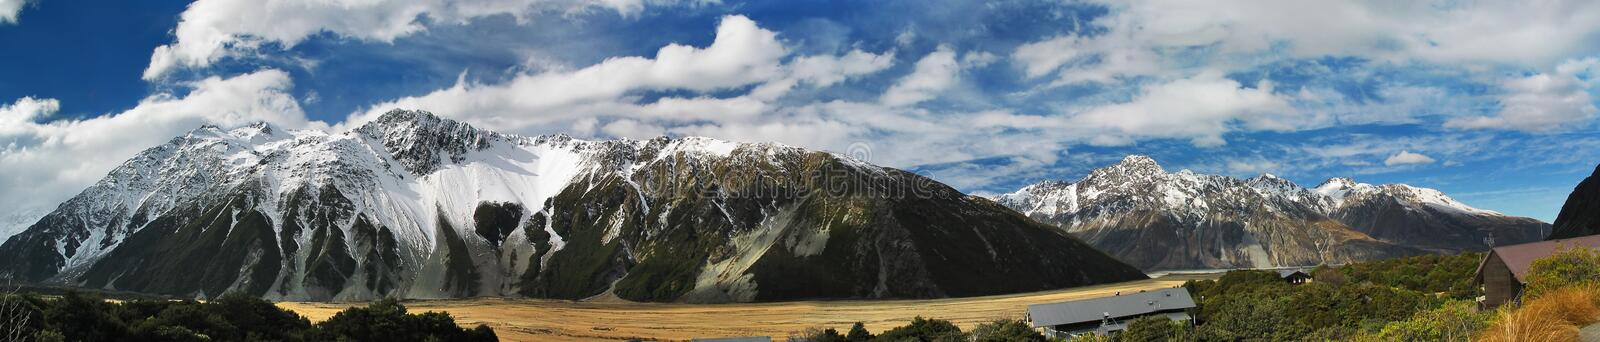 New Zealand scenic mountain landscape. Shot at Mount Cook National Park stock photo